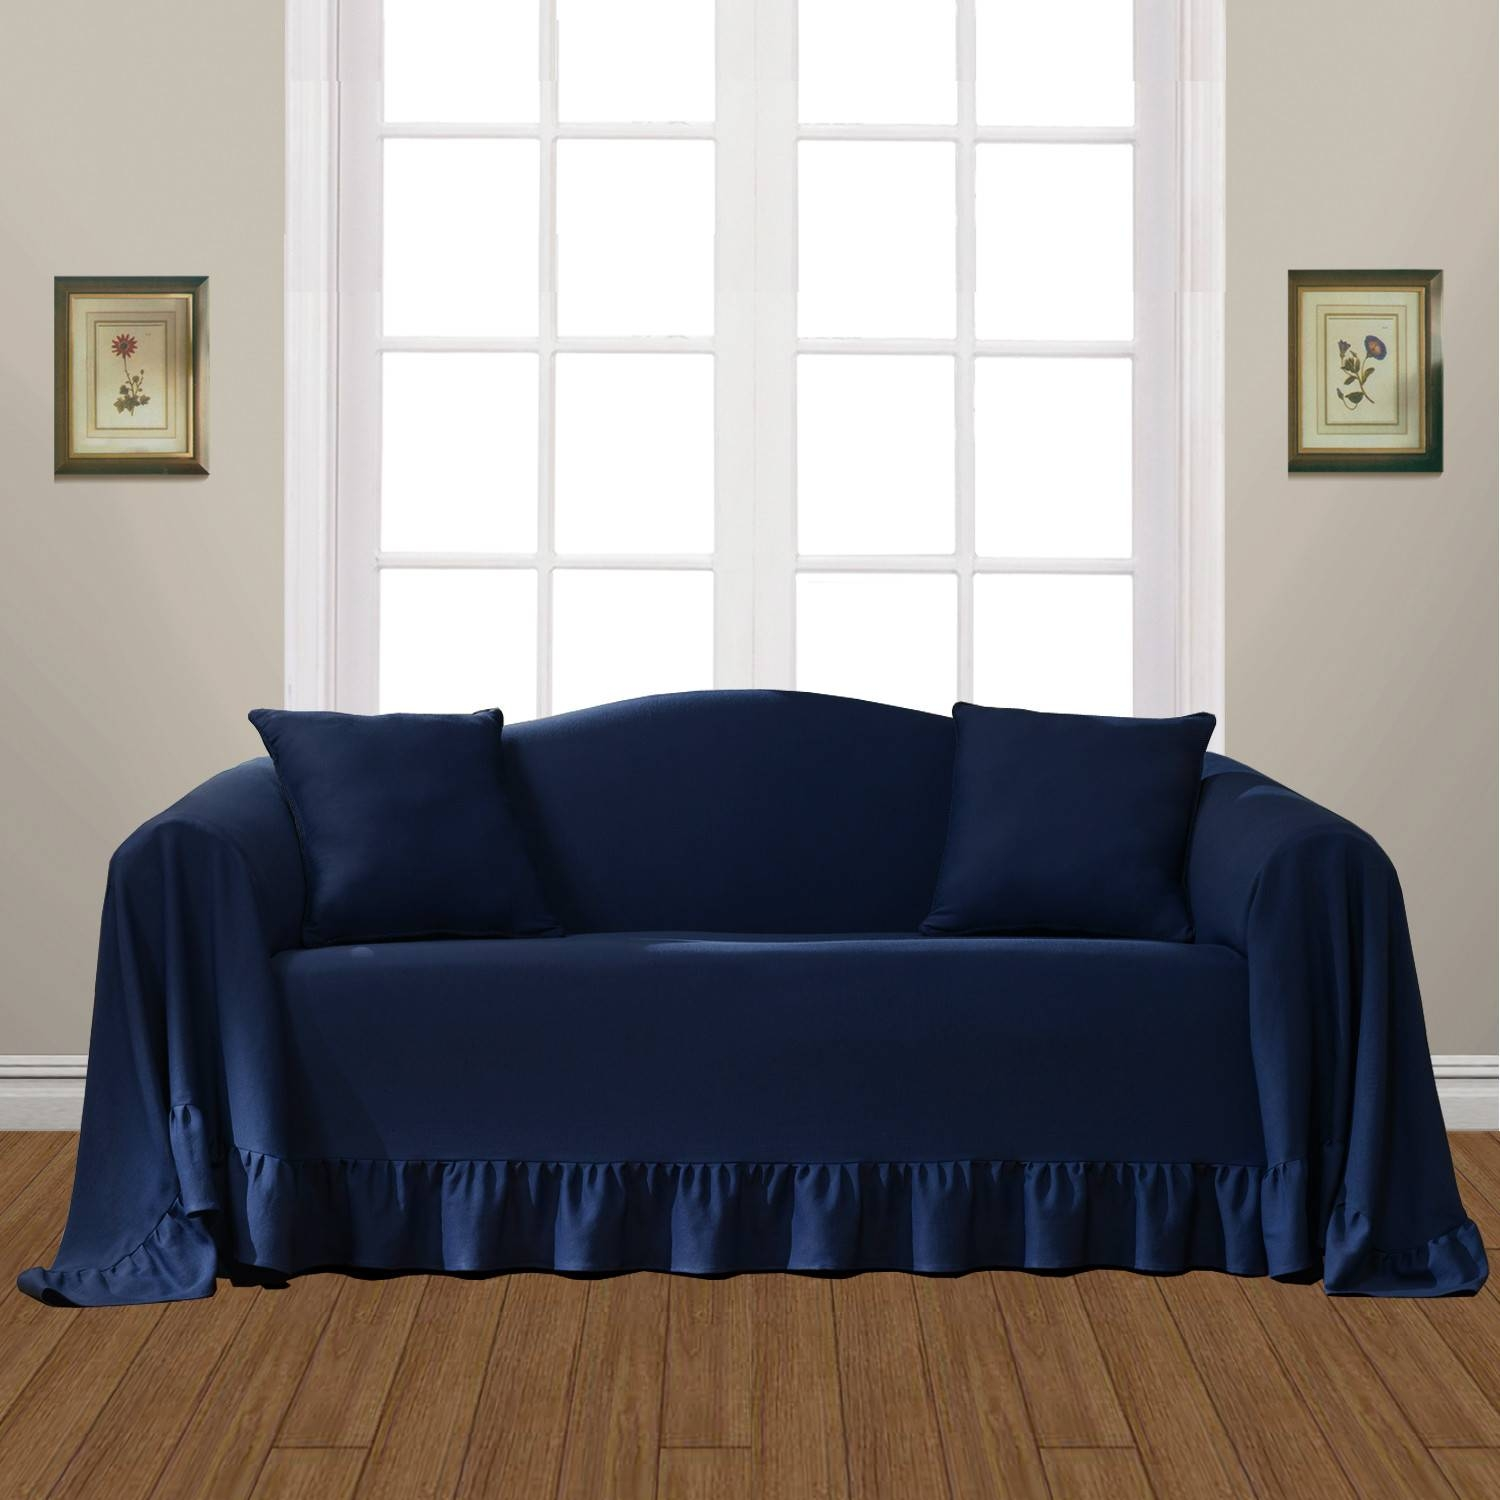 Furniture: Slipcovers Chairs | Sofa Armrest Covers | Recliner intended for Navy Blue Slipcovers (Image 10 of 15)